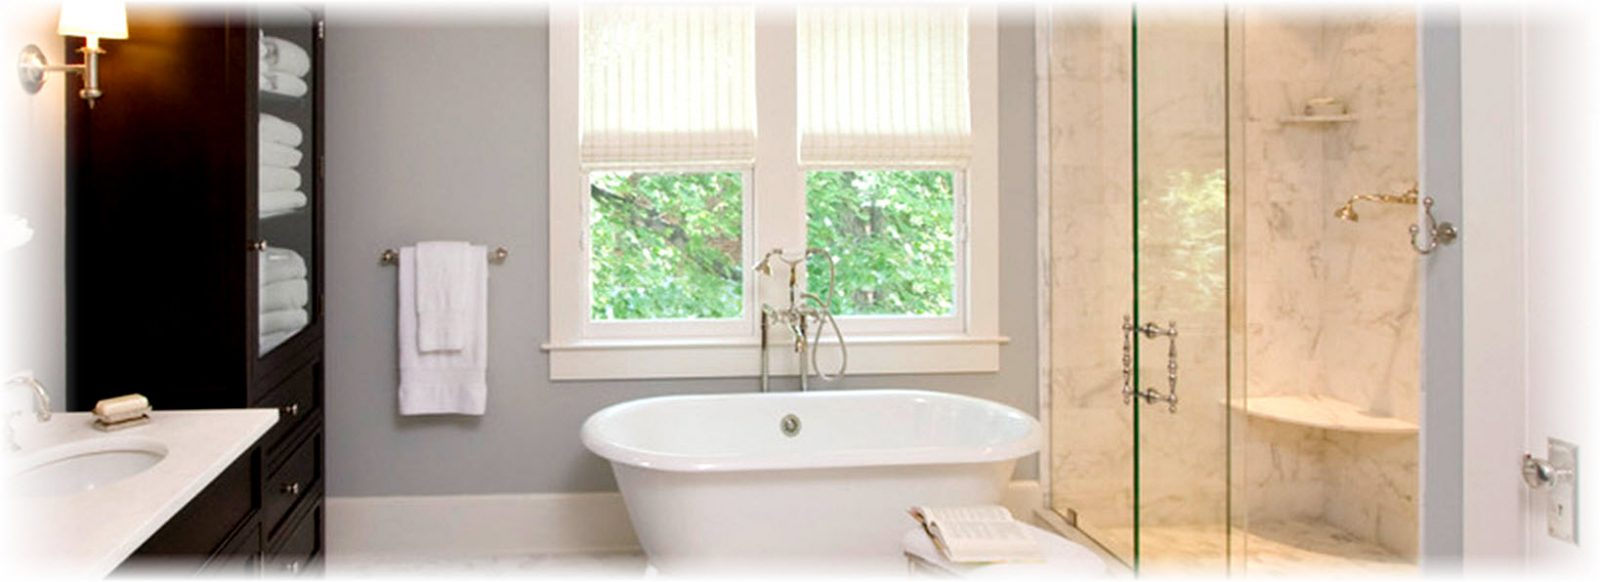 Houston Bathroom Remodeling Bathroom Remodeling Houston Tx Get 25 Off Now Gulf Remodeling